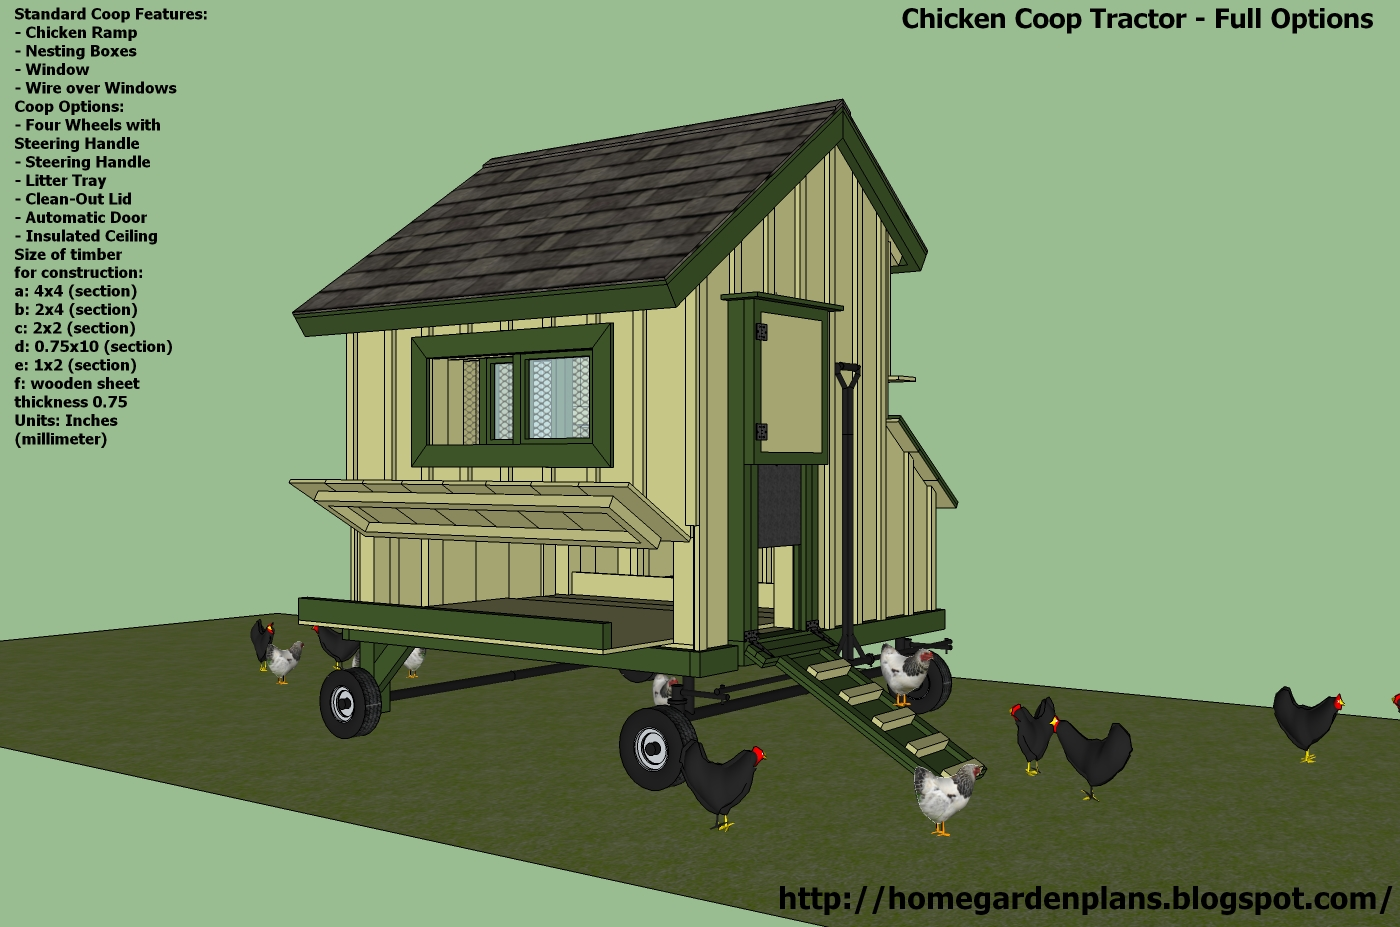 chicken coop for sale west yorkshire